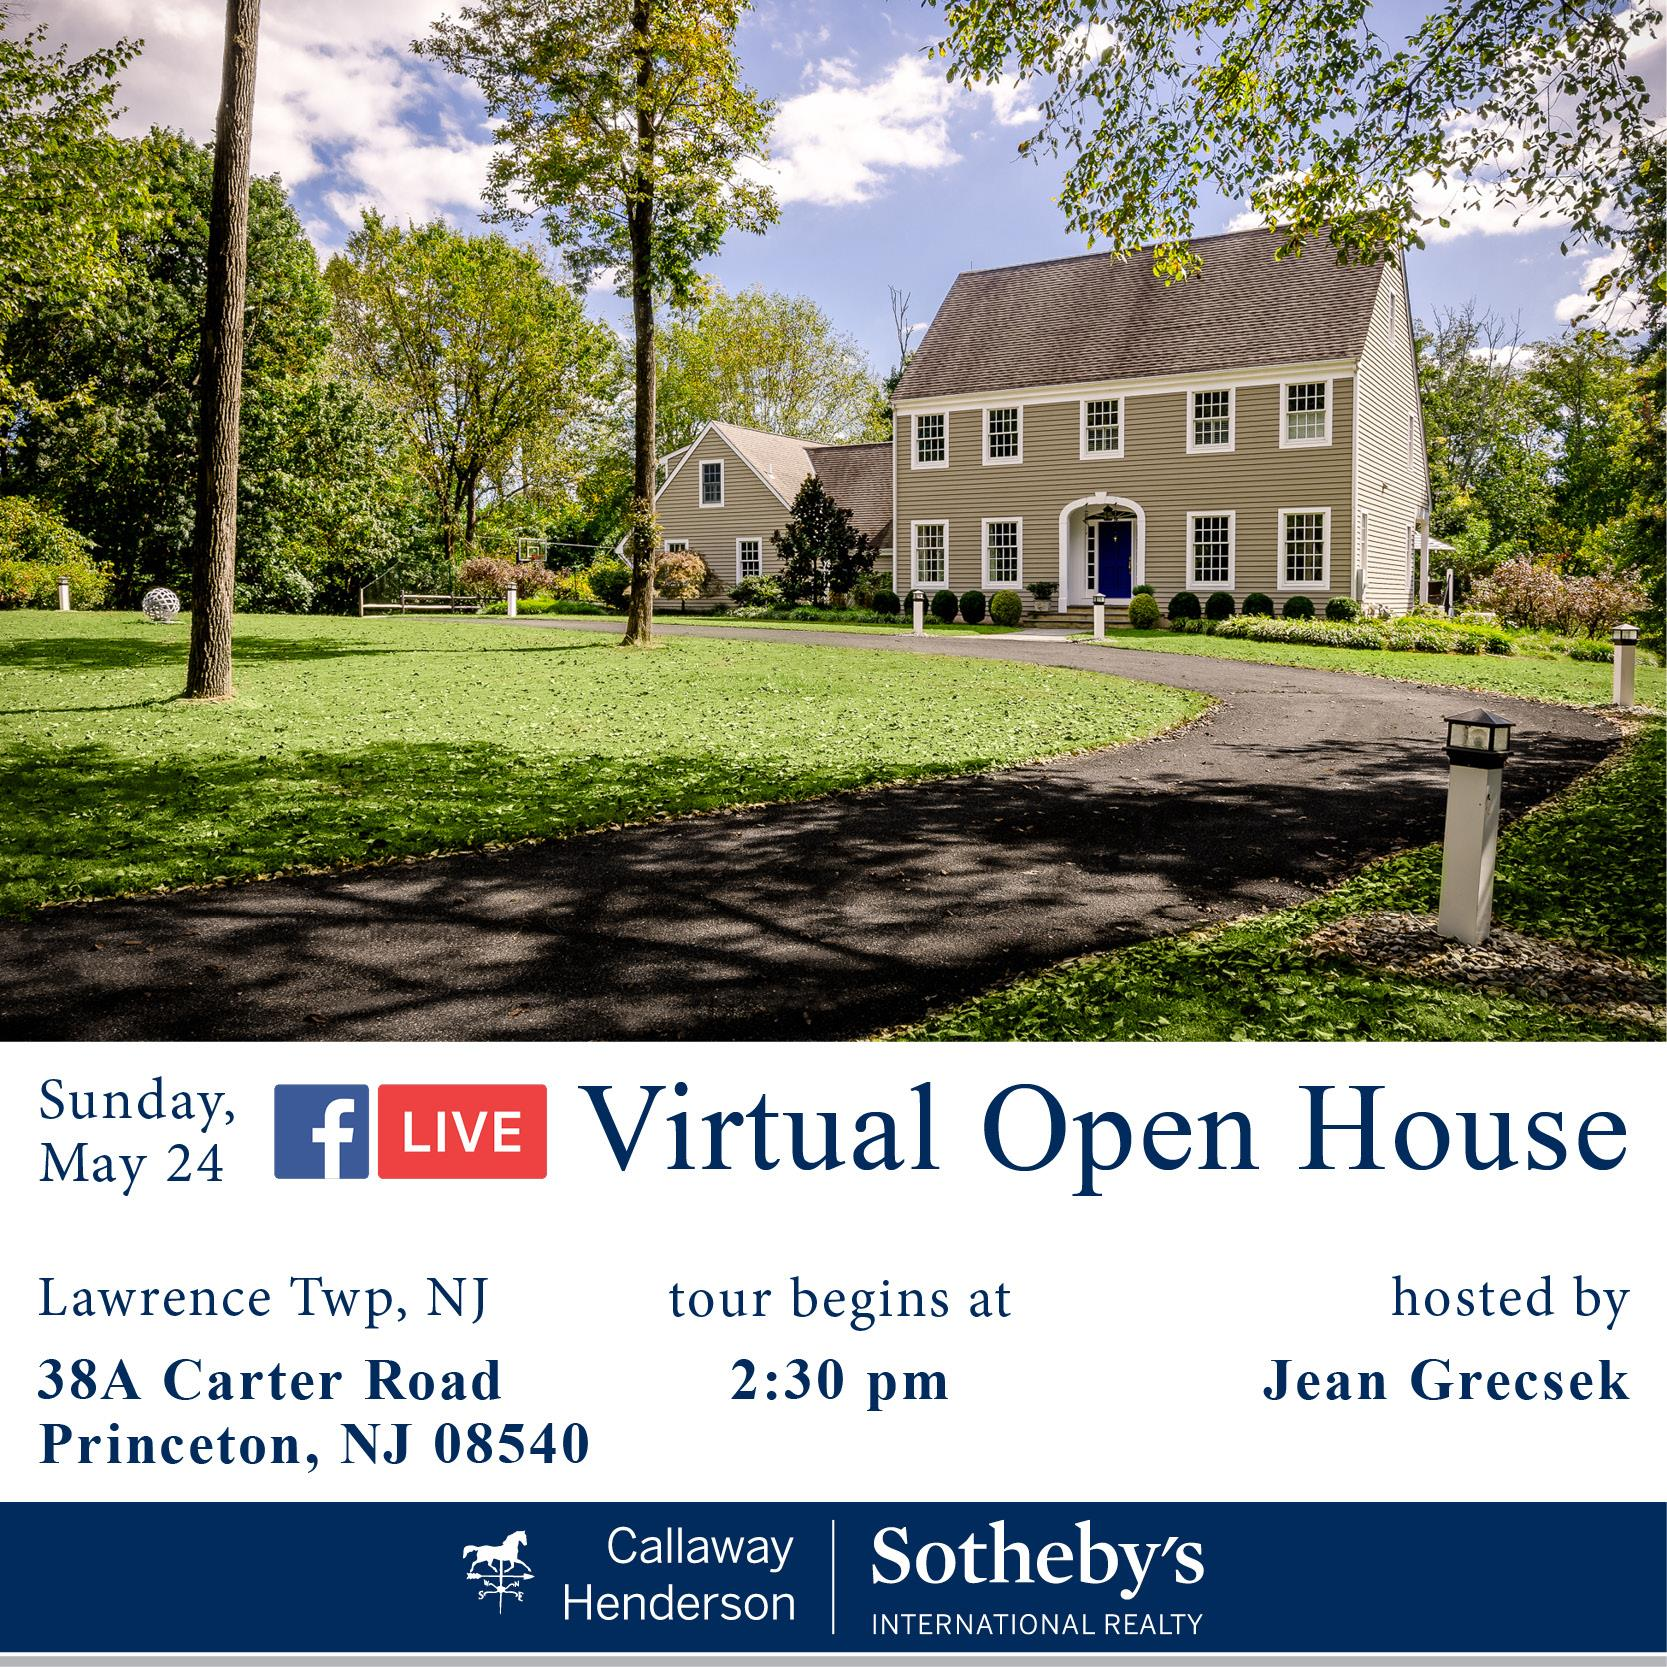 Live Virtual Open House Template-Carter Road 38A